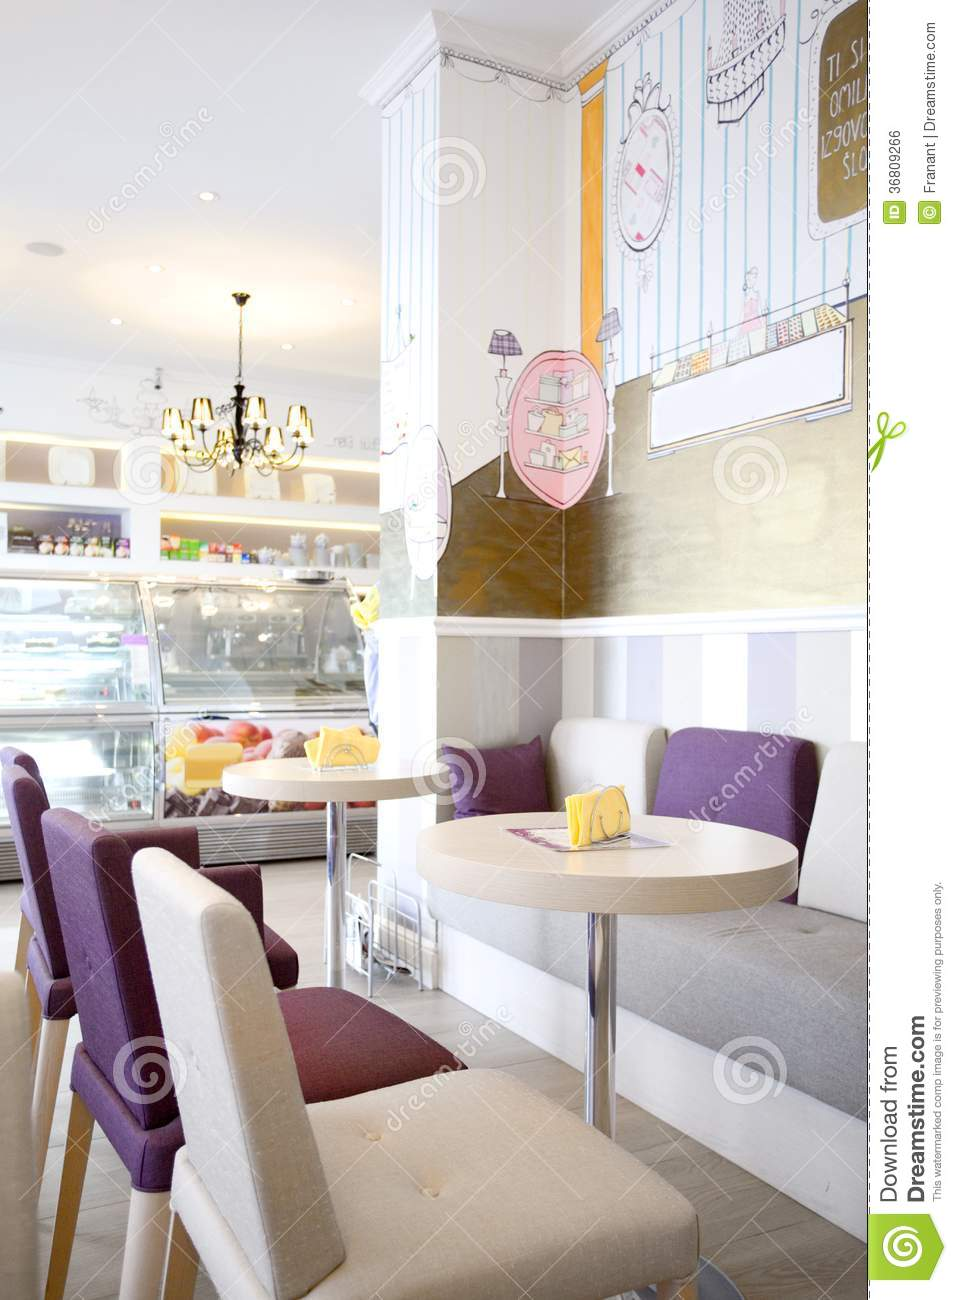 Interior Design Royalty Free Stock Image - Image: 36809266